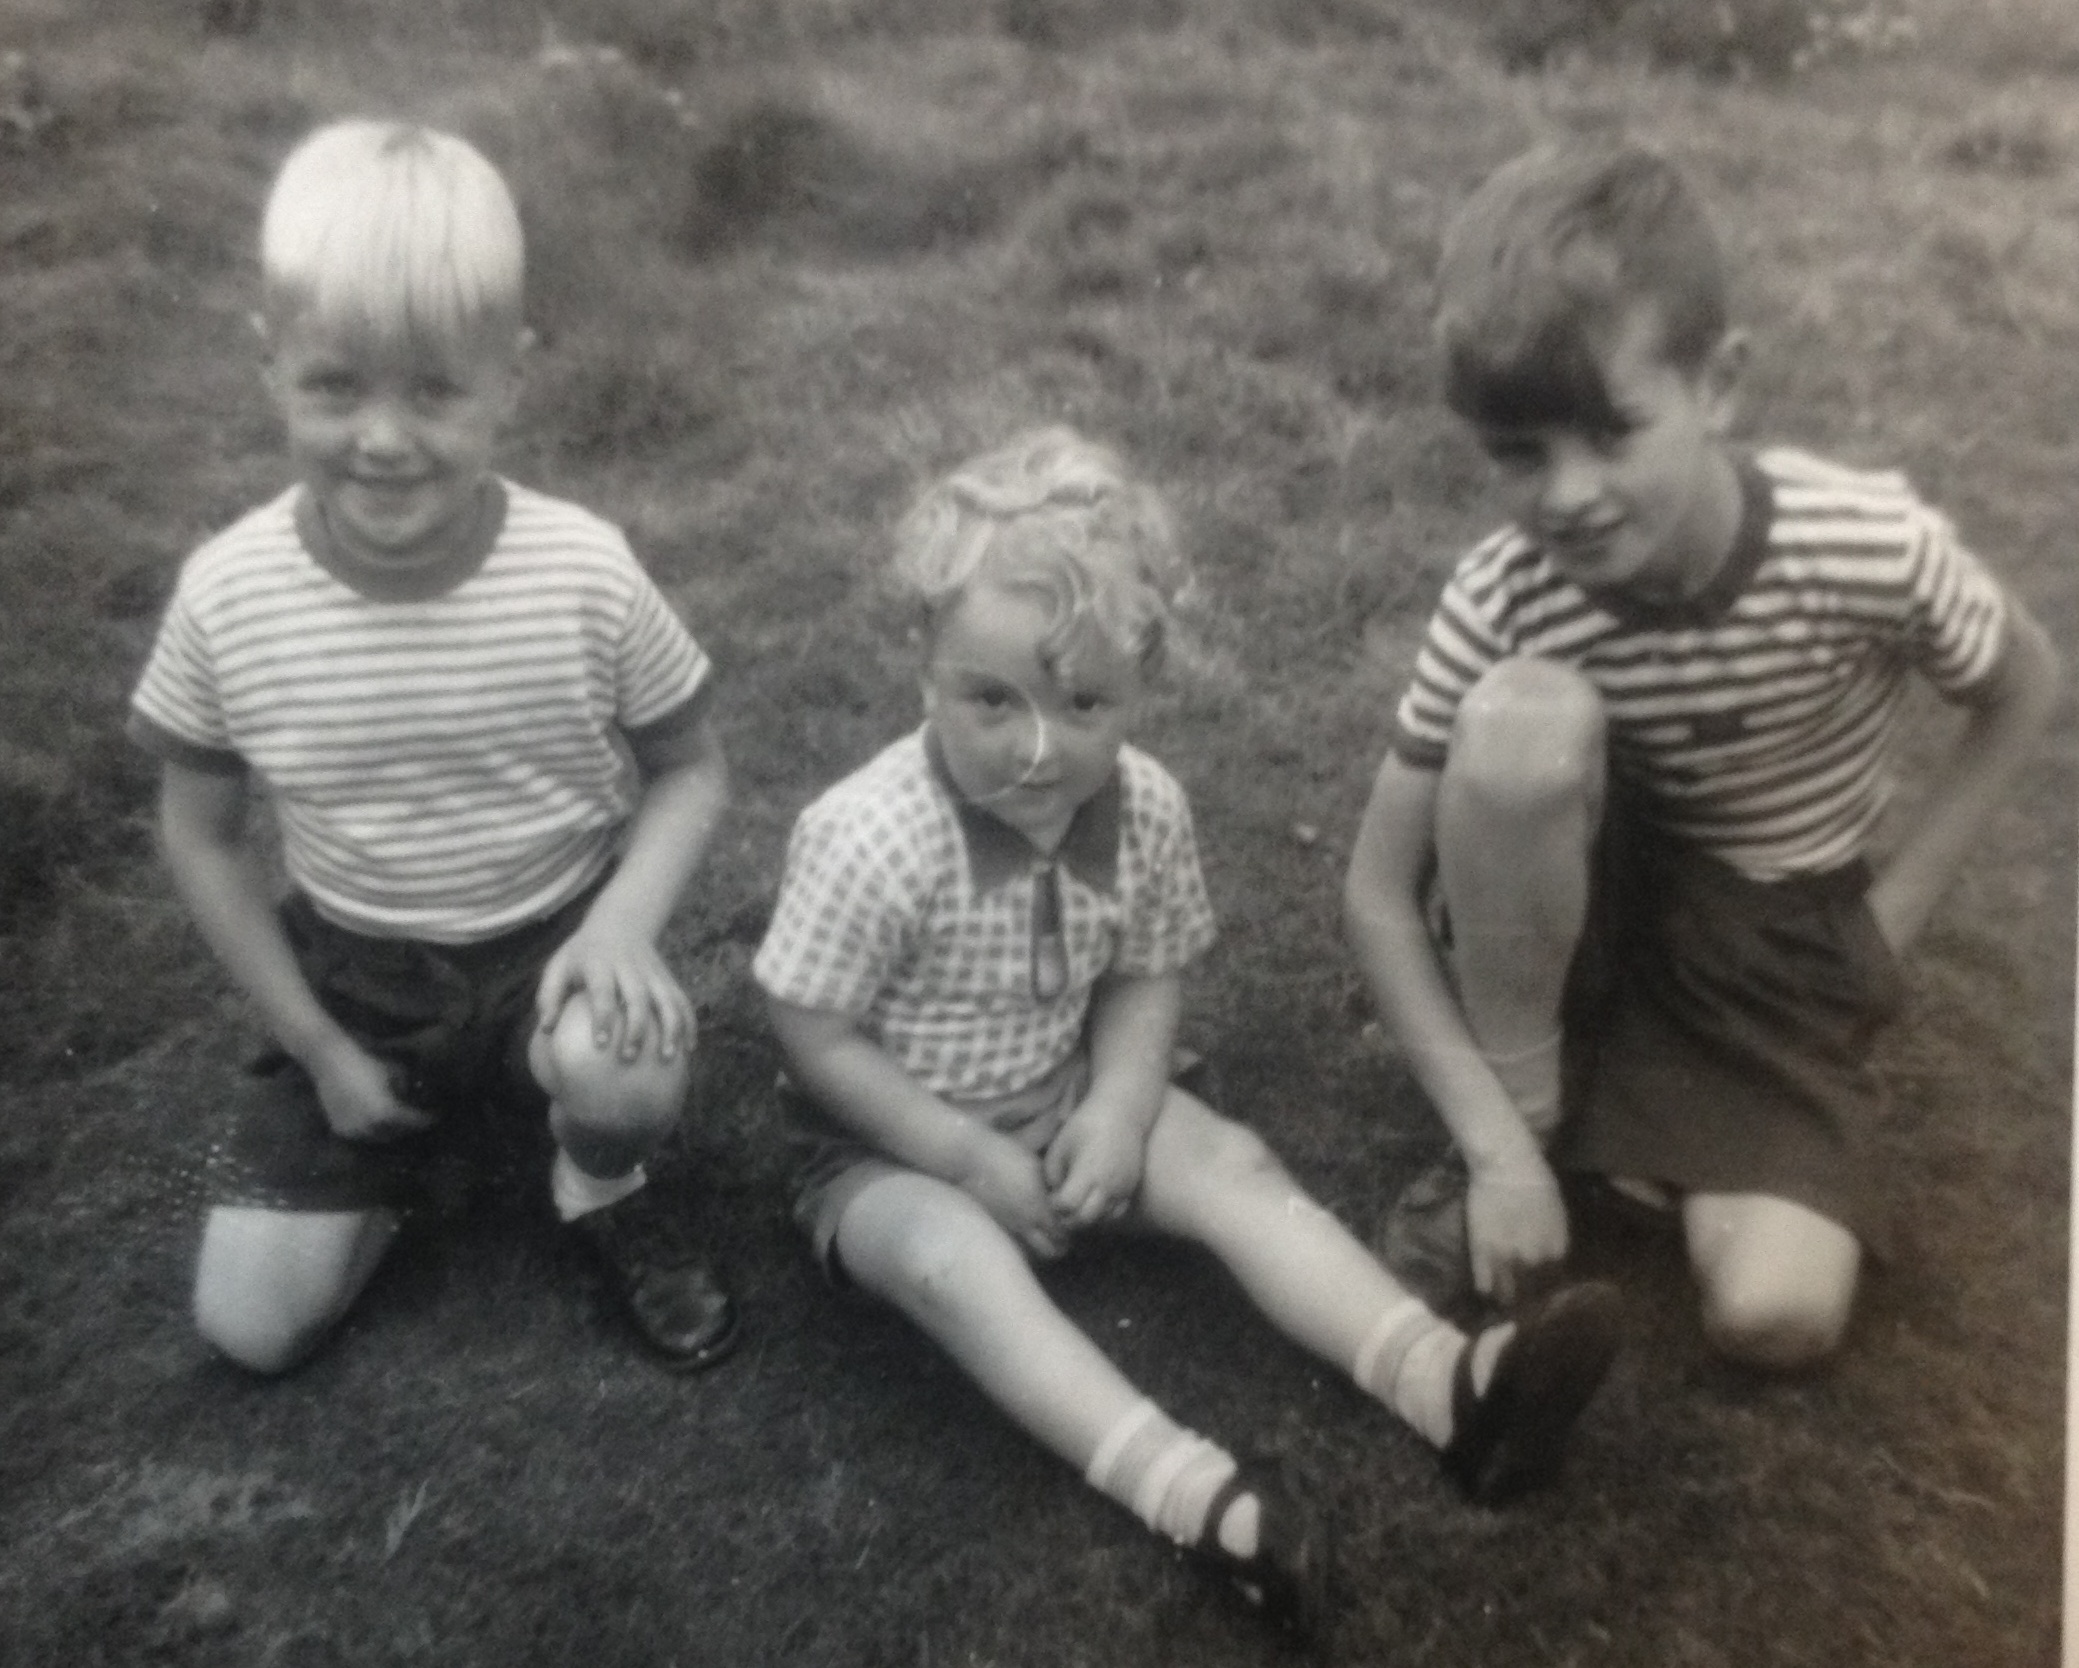 Duncan, Gordon and Peter about 1958